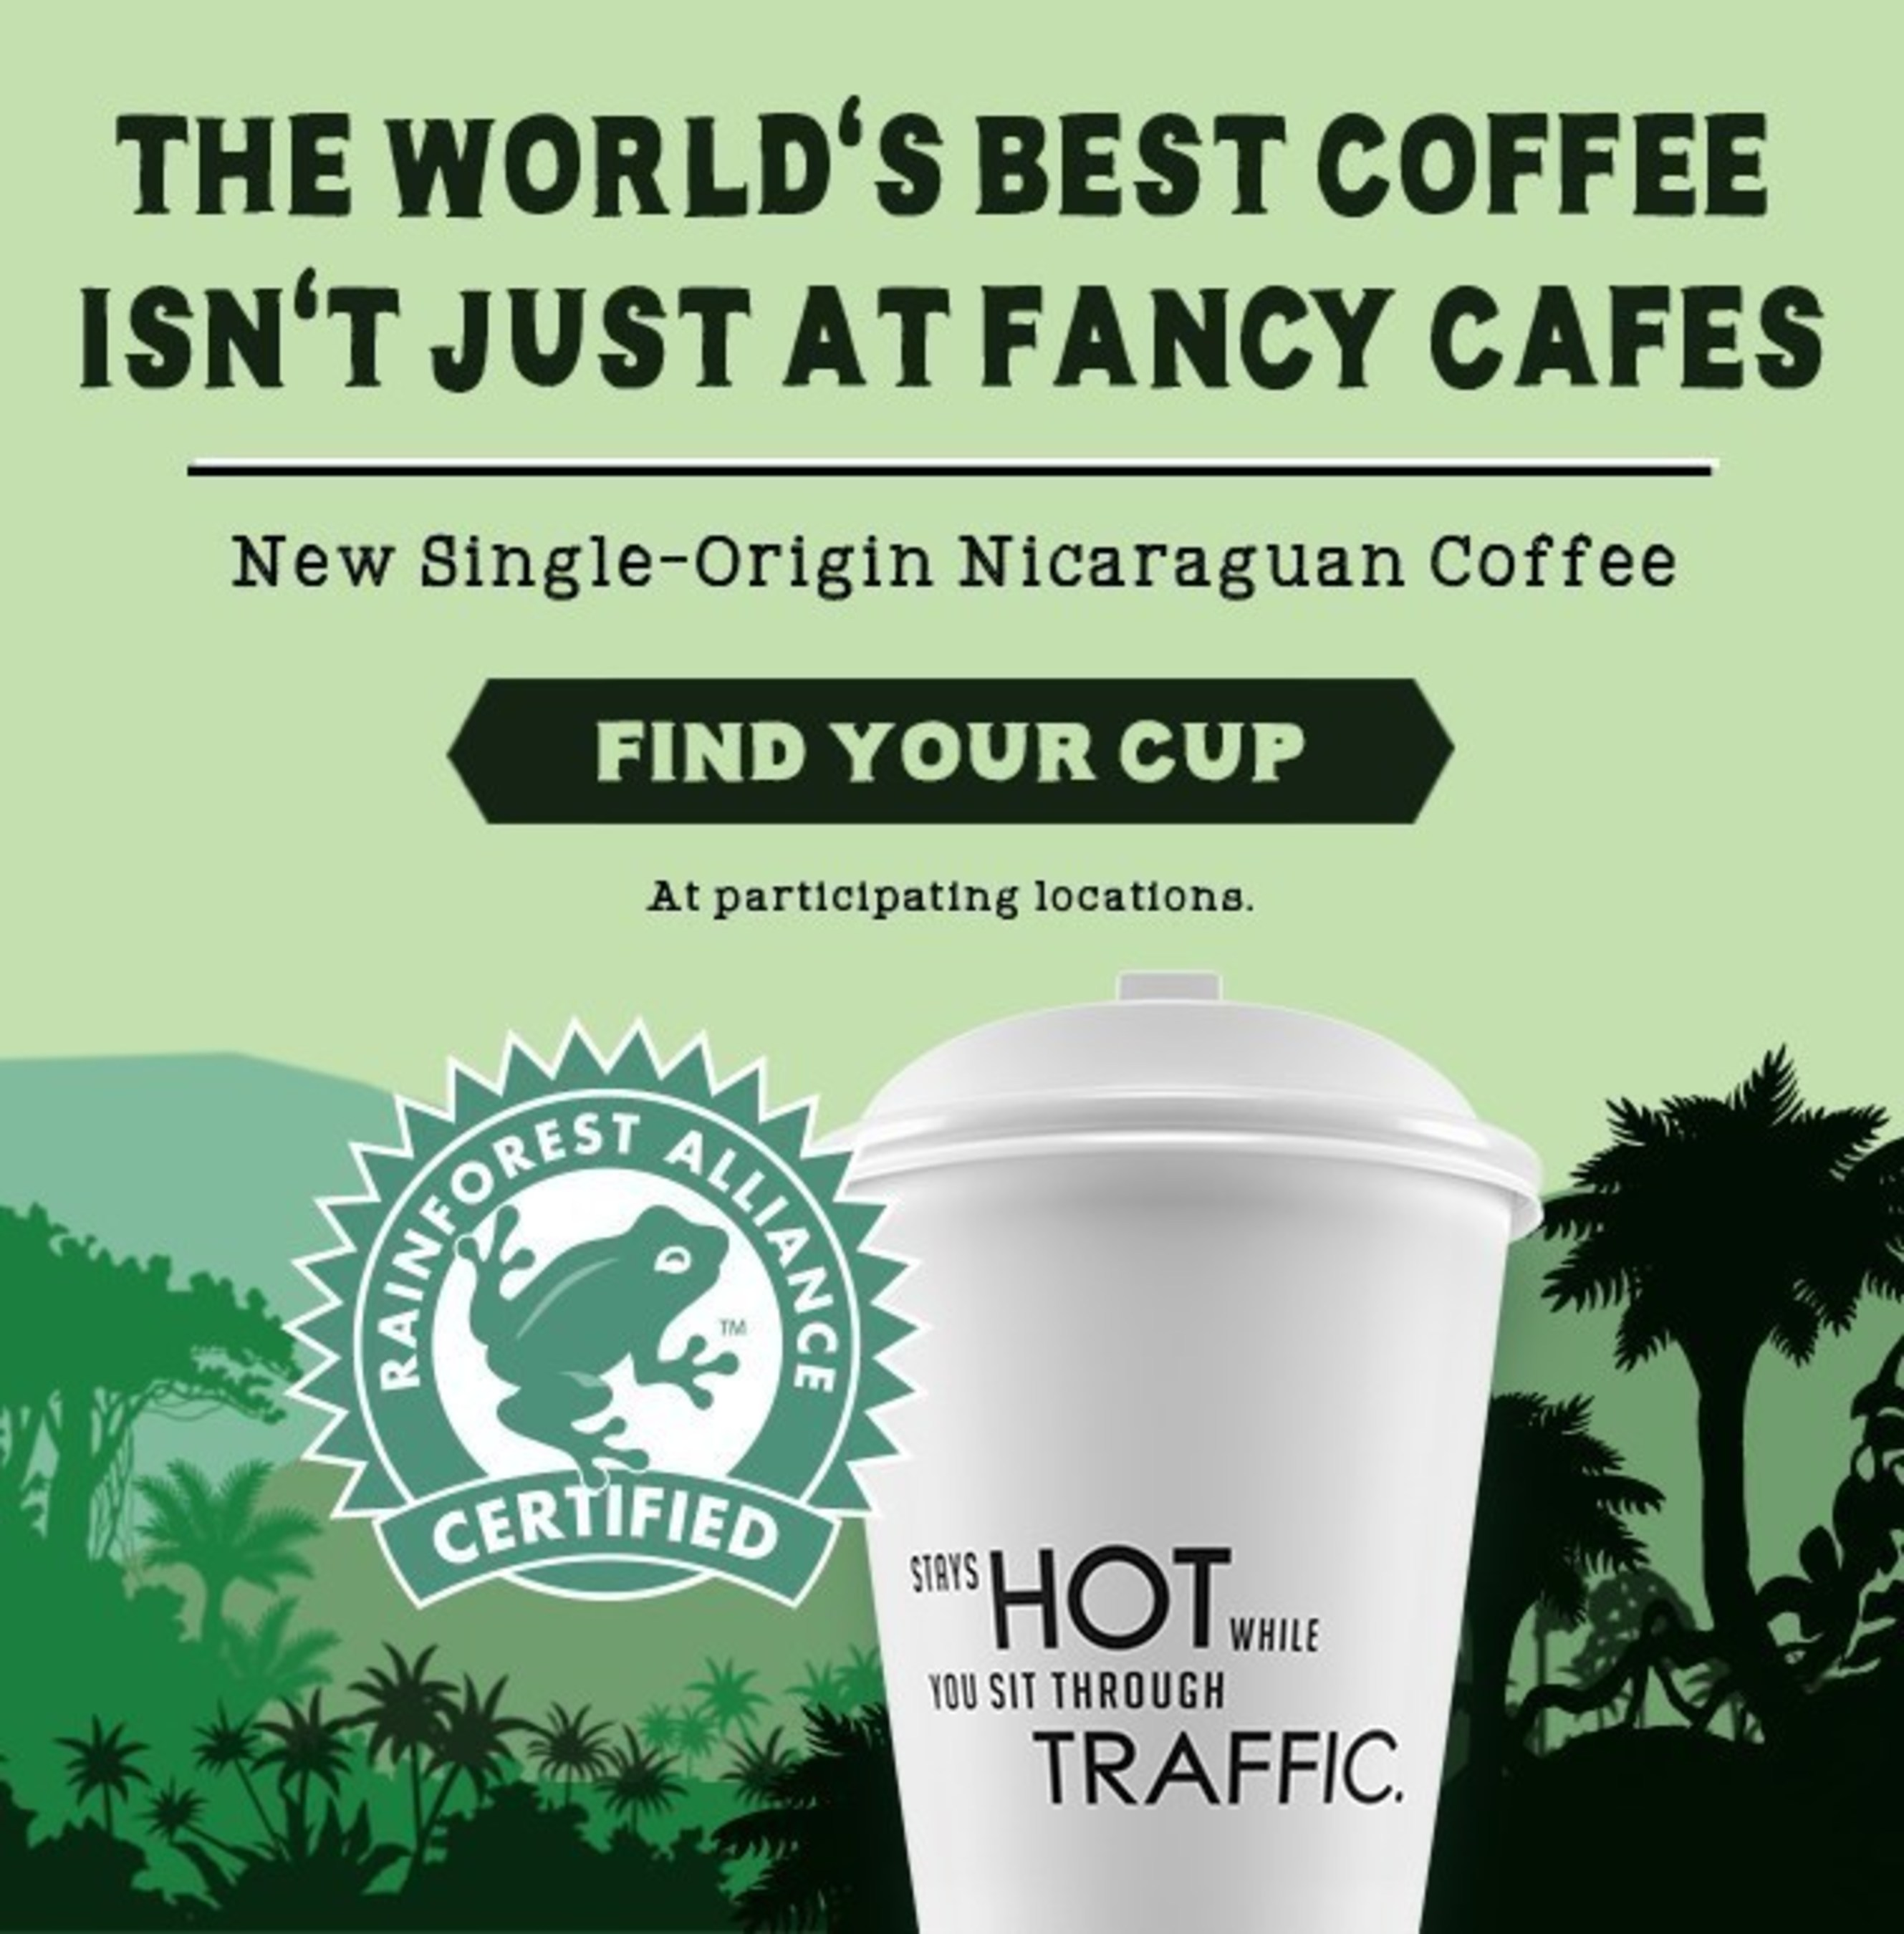 Available exclusively at 7-Eleven(R) stores, the new Nicaragua single-origin coffee from Matagalpa not only tastes good; it is a feel-good way to start the day. The recently introduced premium brew is the retailer's first coffee to be certified by the Rainforest Alliance.